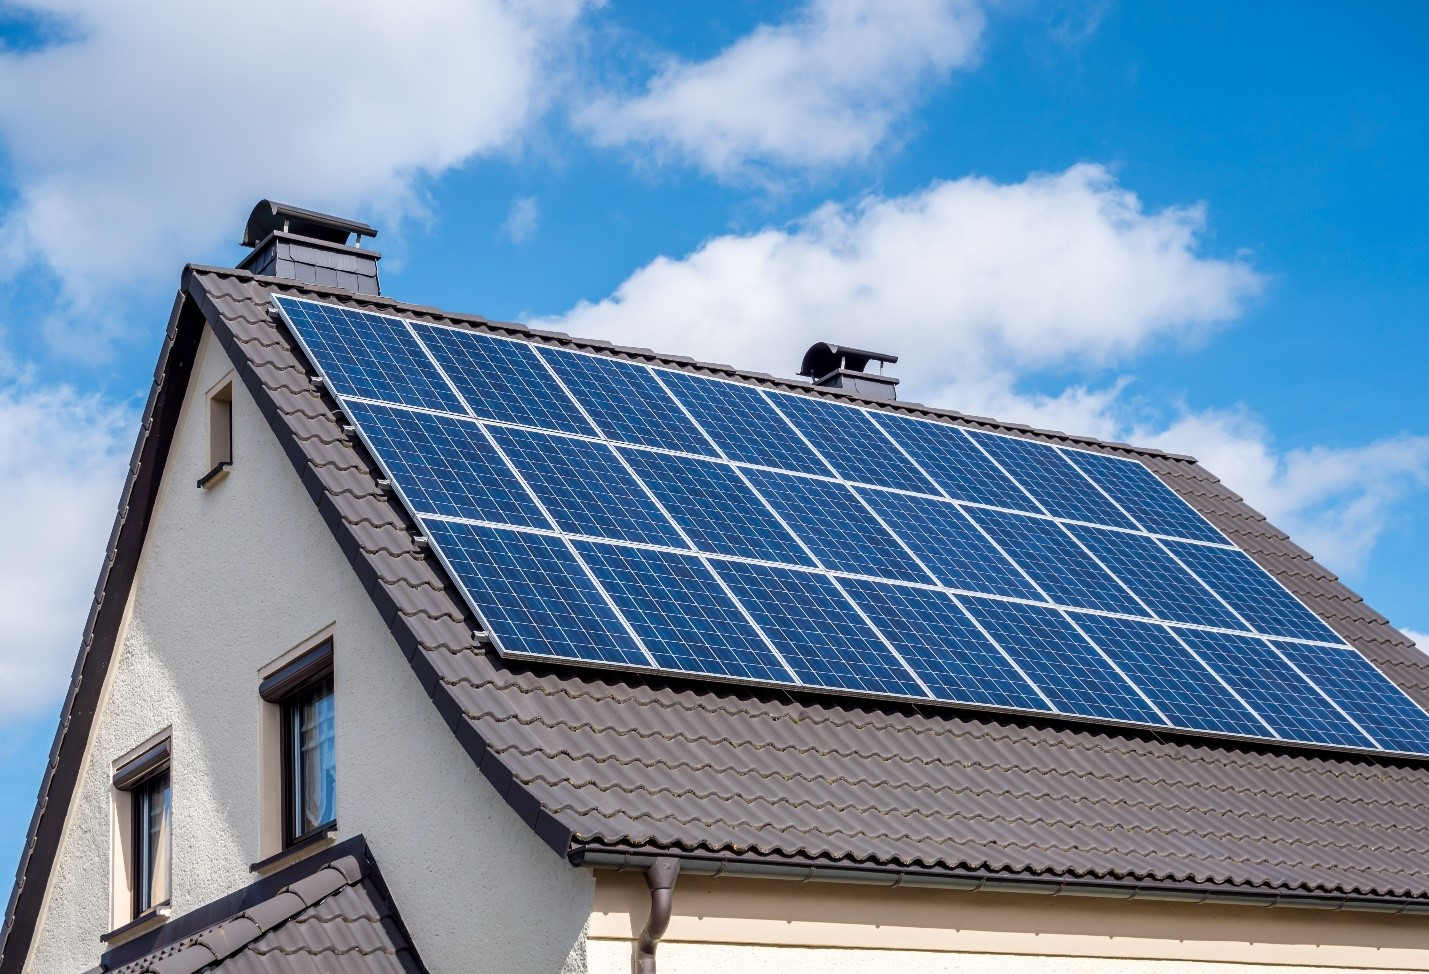 Minimize Your Home Electricity Bill with Solar Panels - TechStory